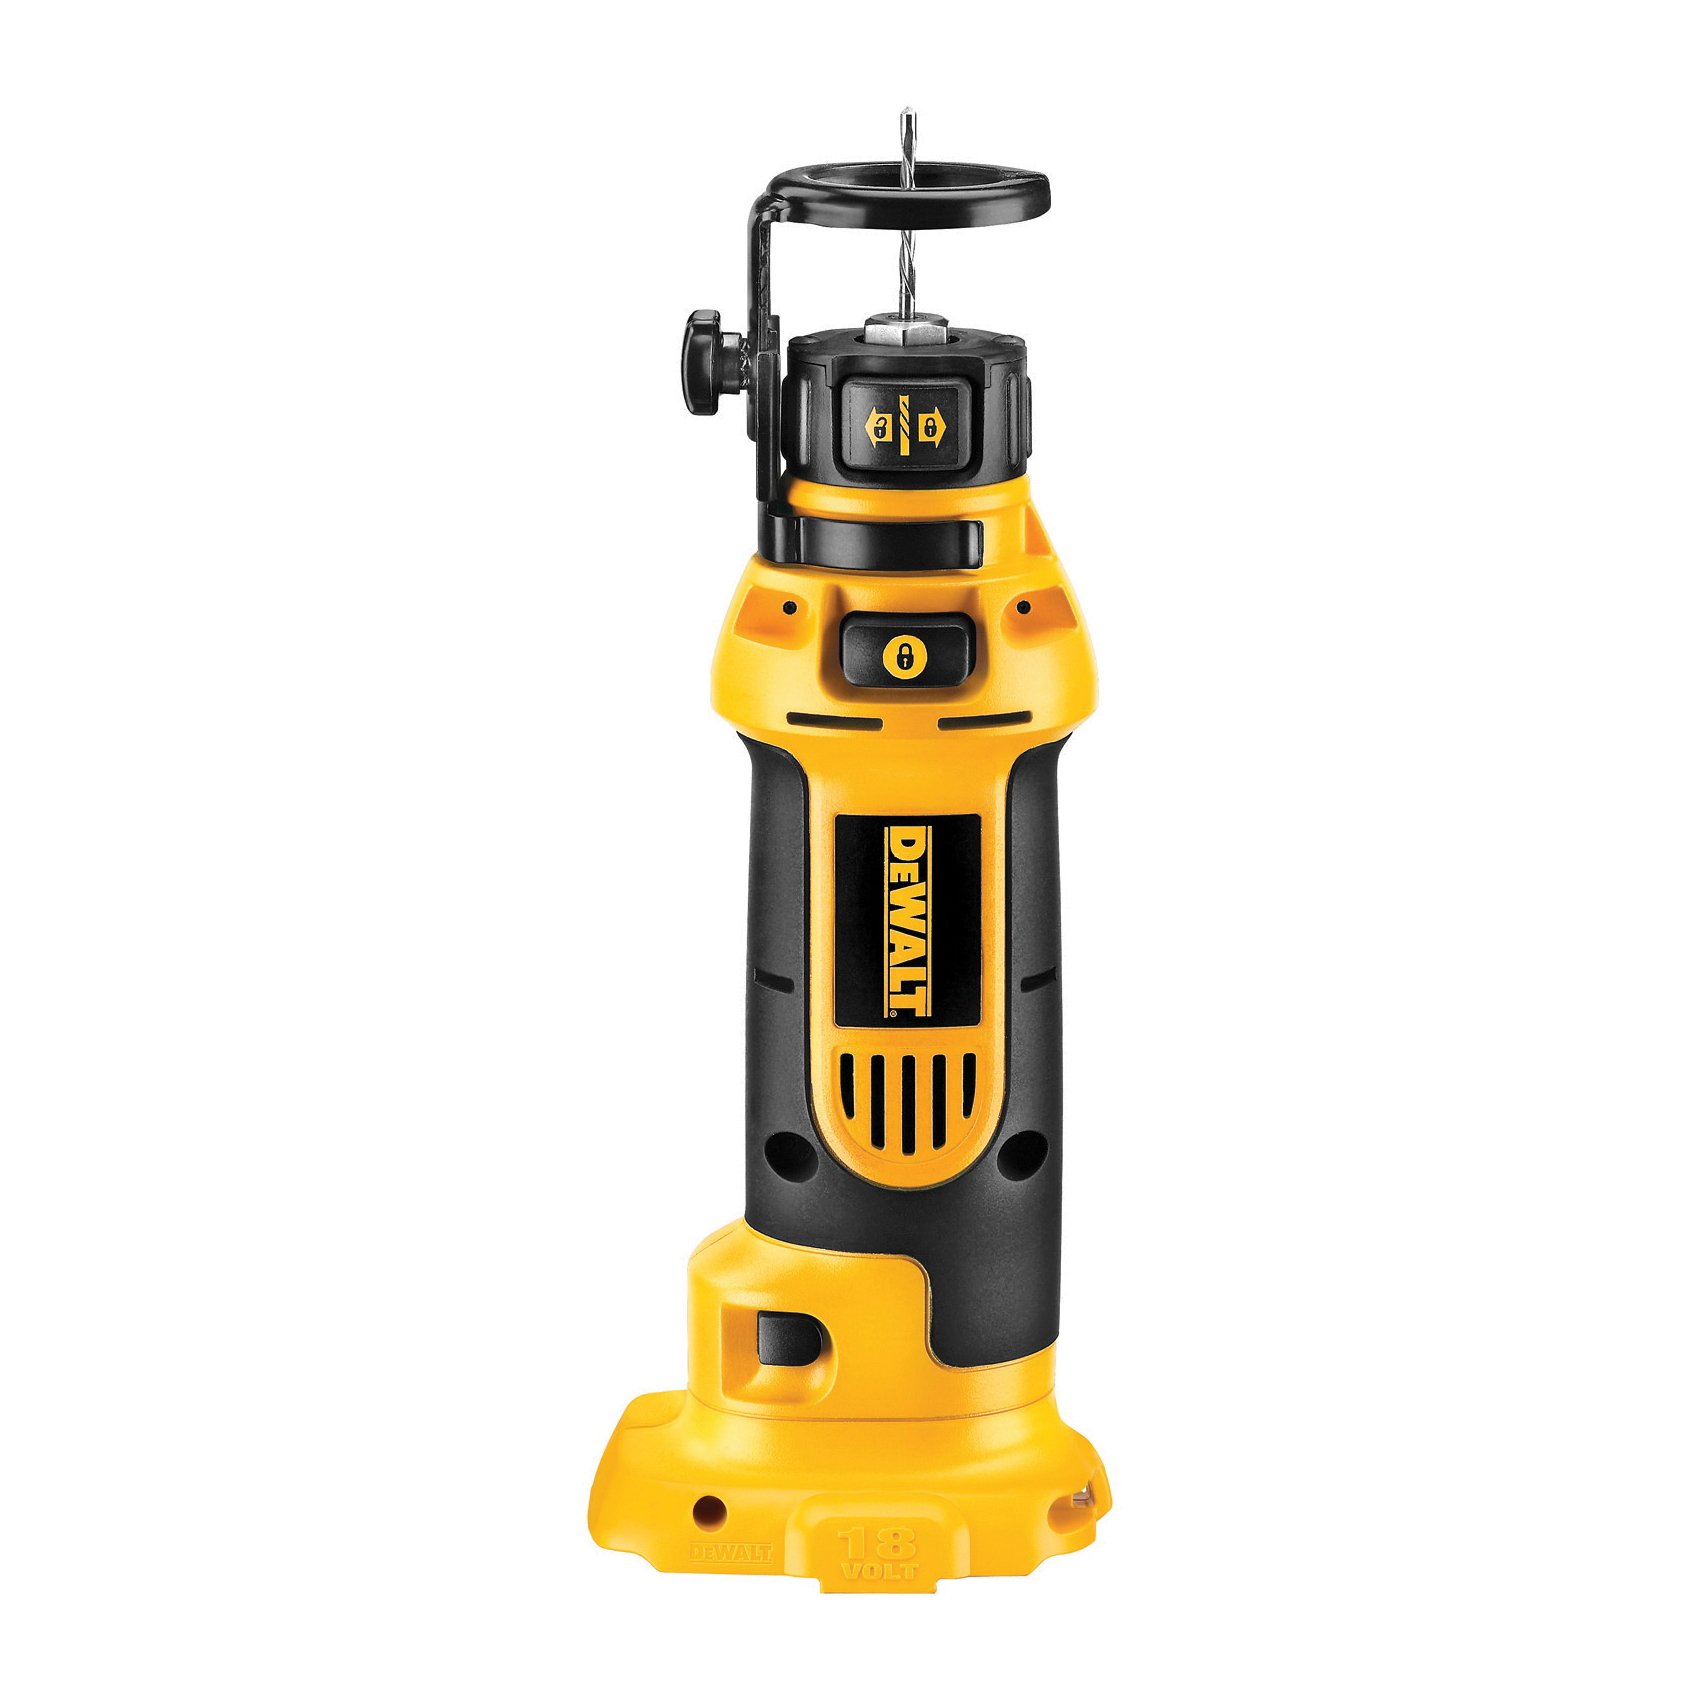 DeWALT® DC550B Cordless Cut-Out Tool, 2.4 Ah NiCd Battery, 18 VDC, 1/4 in, 1/8 in Collet